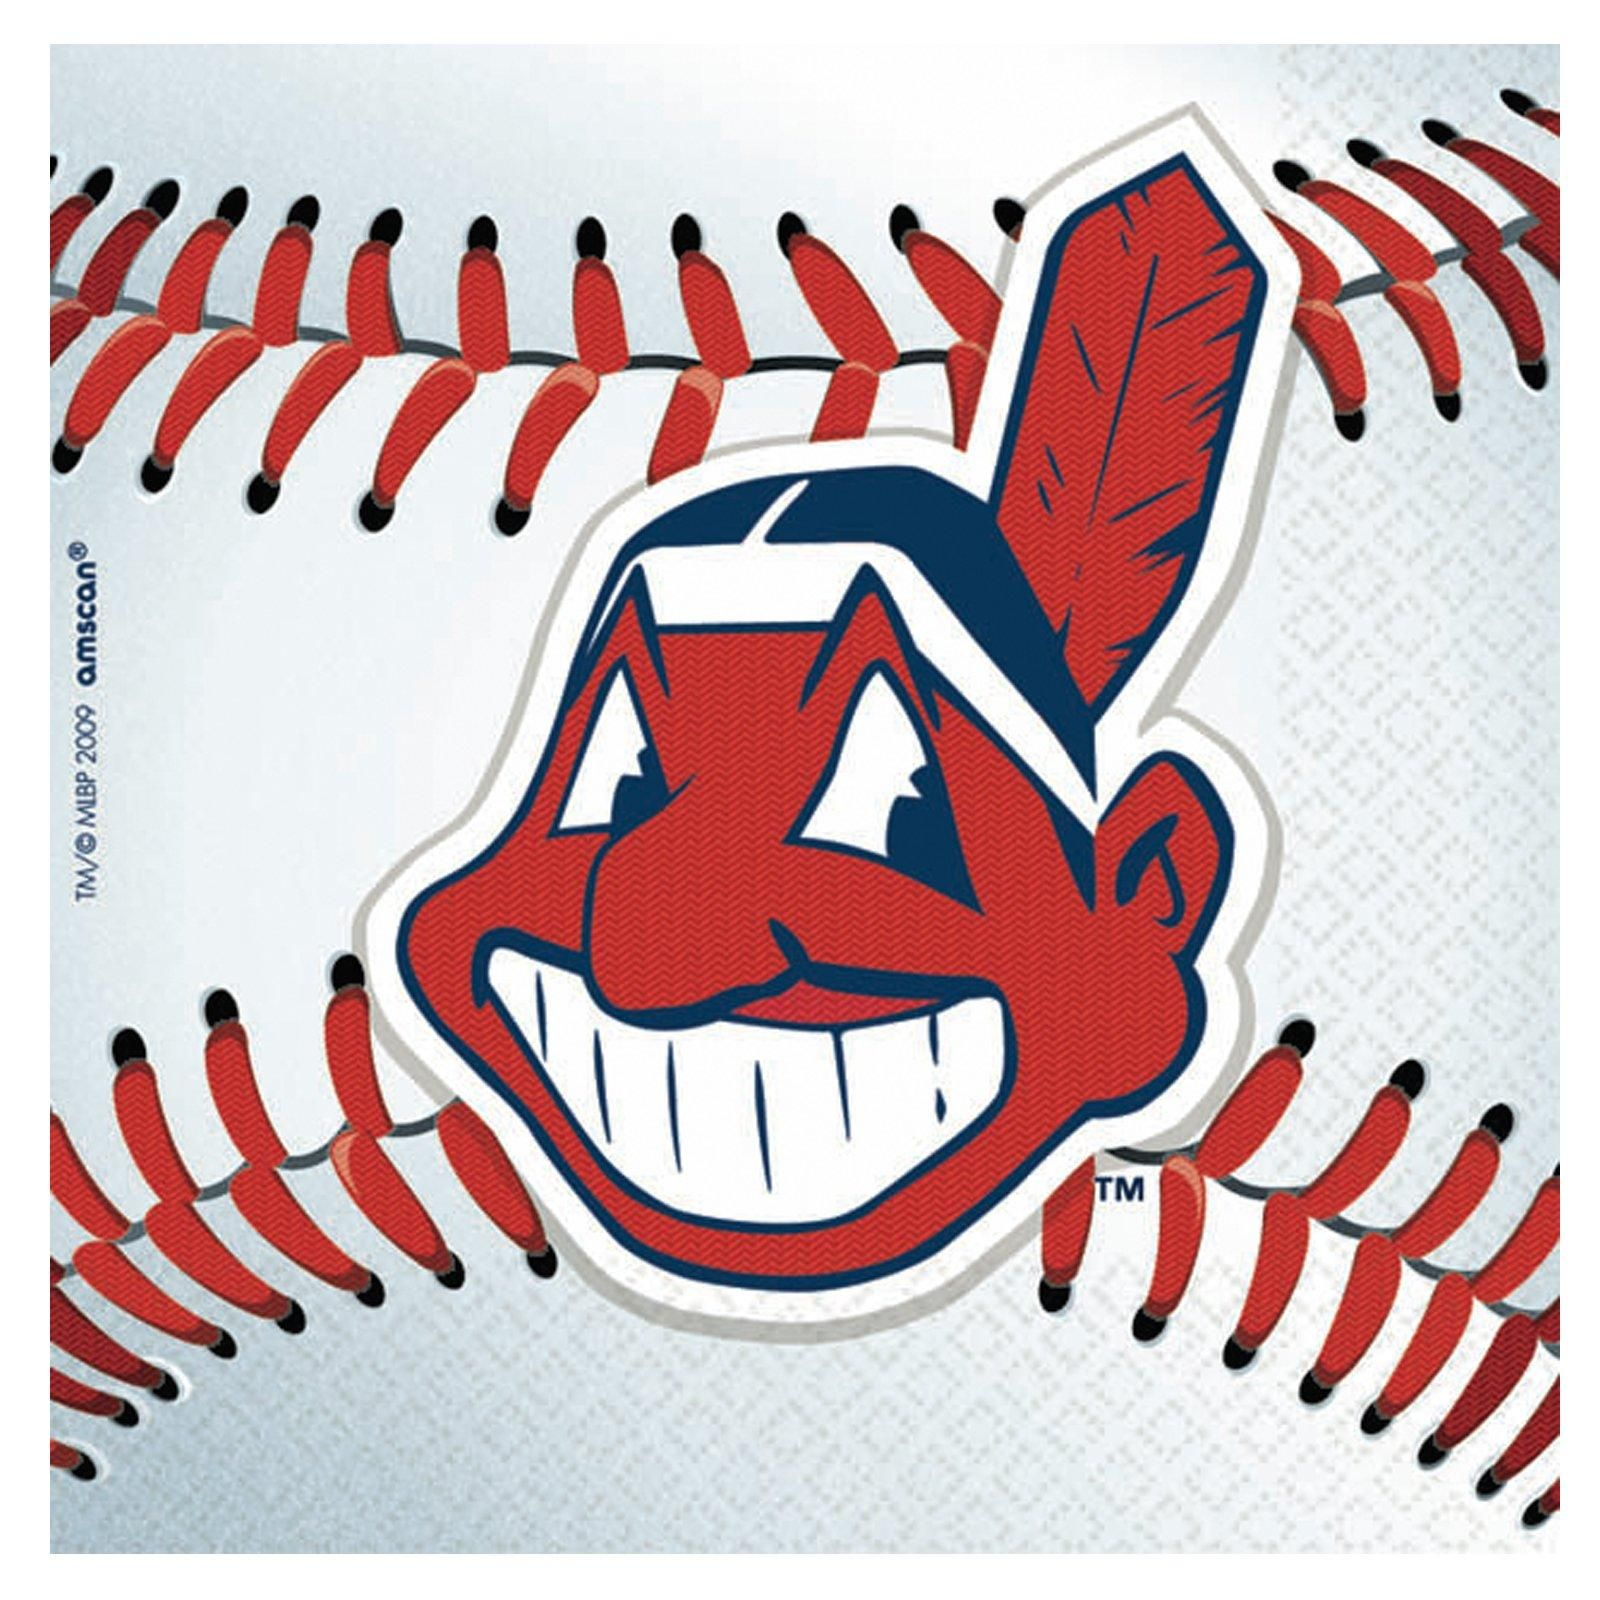 1600x1600 - Cleveland Indians Wallpapers 20